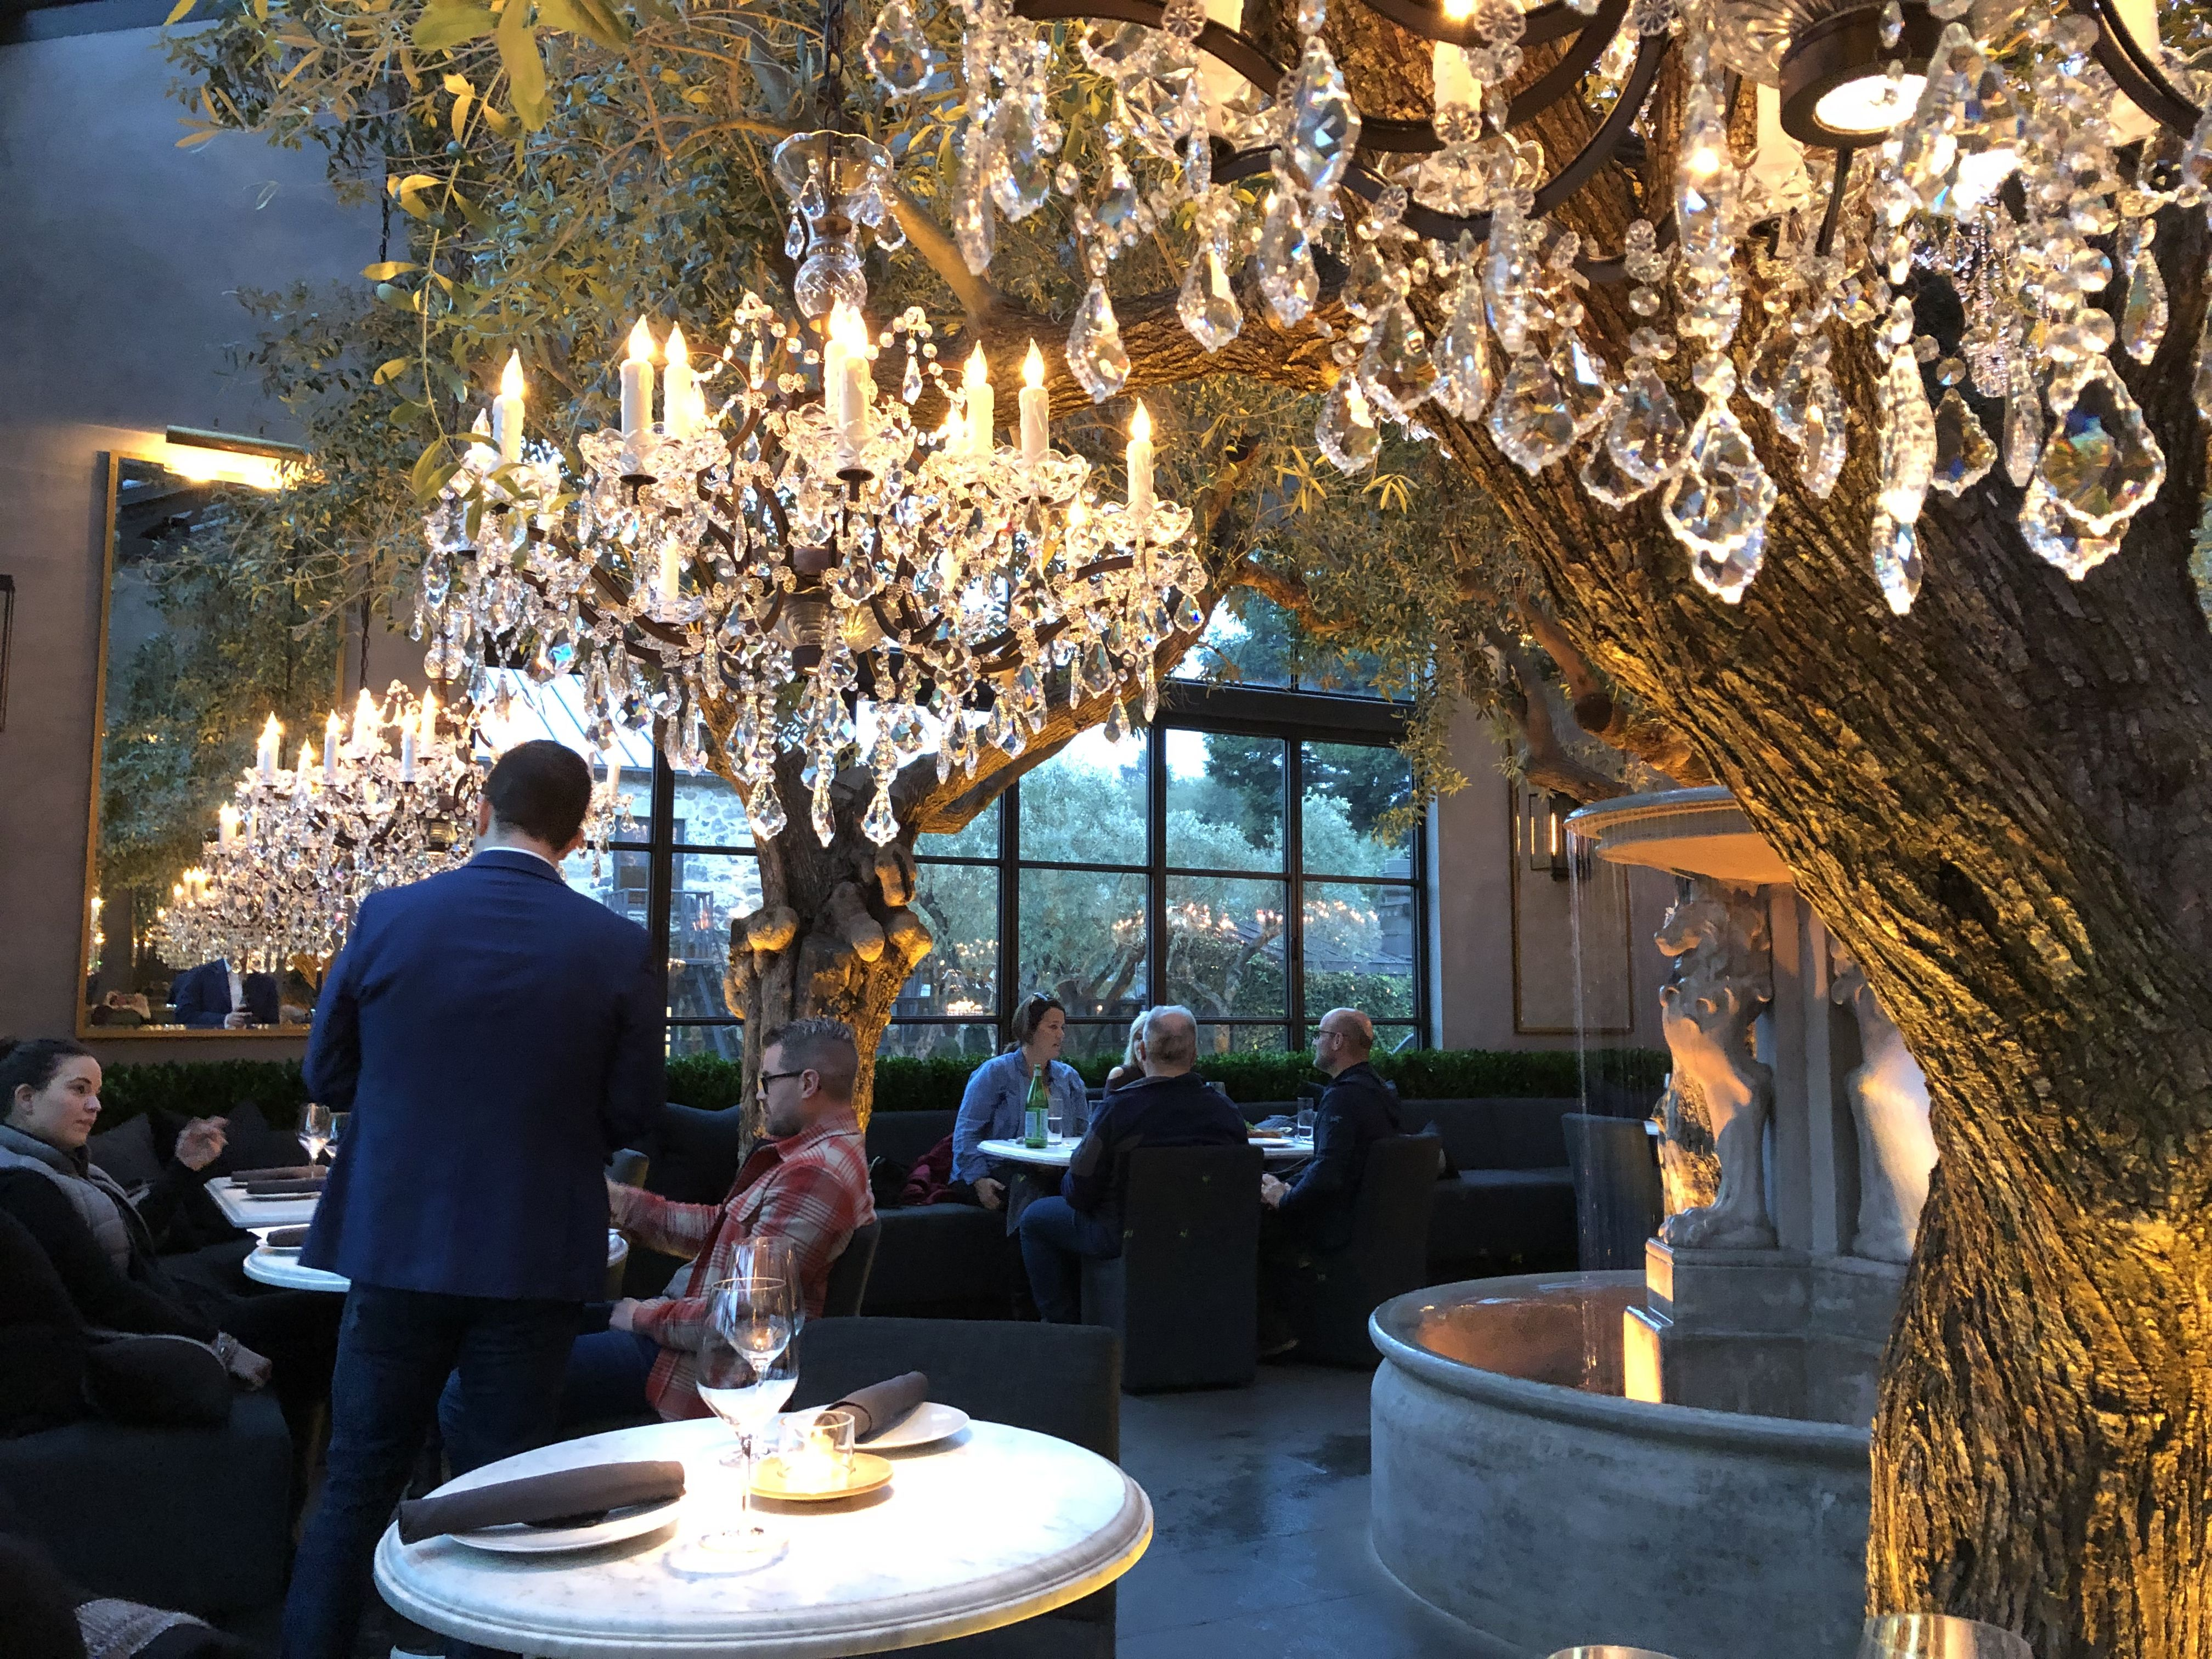 Rh Restaurant And Tasting Room Chandeliers And Olive Trees Yountville Ca Napa Valley Romantic Chandelier Single Pendant Lighting Crystal Chandelier